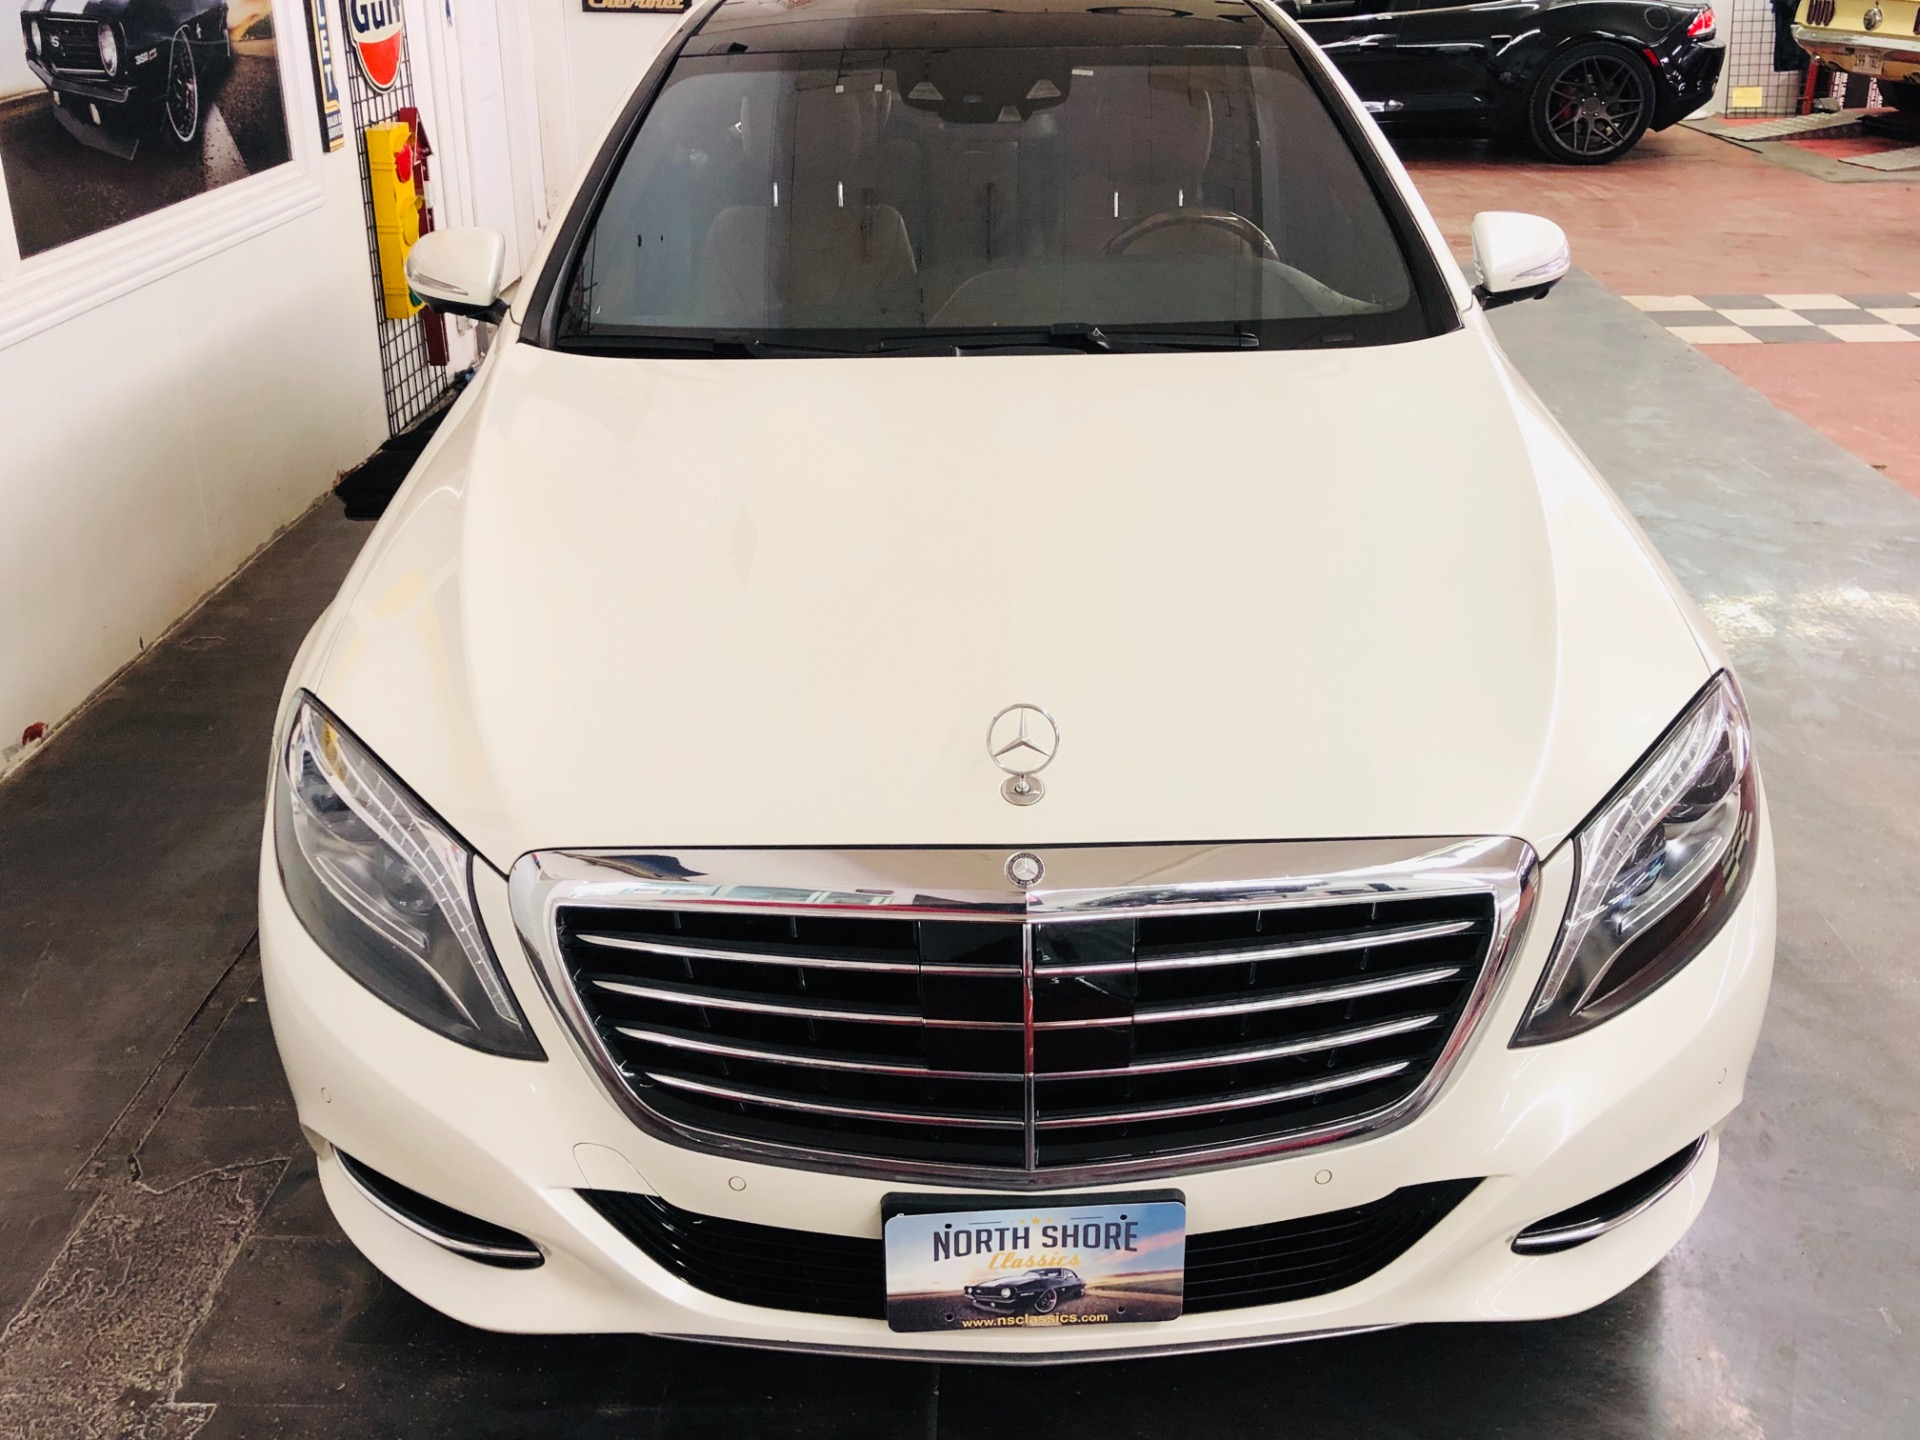 Used 2015 Mercedes Benz S-Class -BELOW BLUEBOOK RETAIL-S 550 4MATIC ALL WHEEL DRIVE TWIN TURBO- | Mundelein, IL